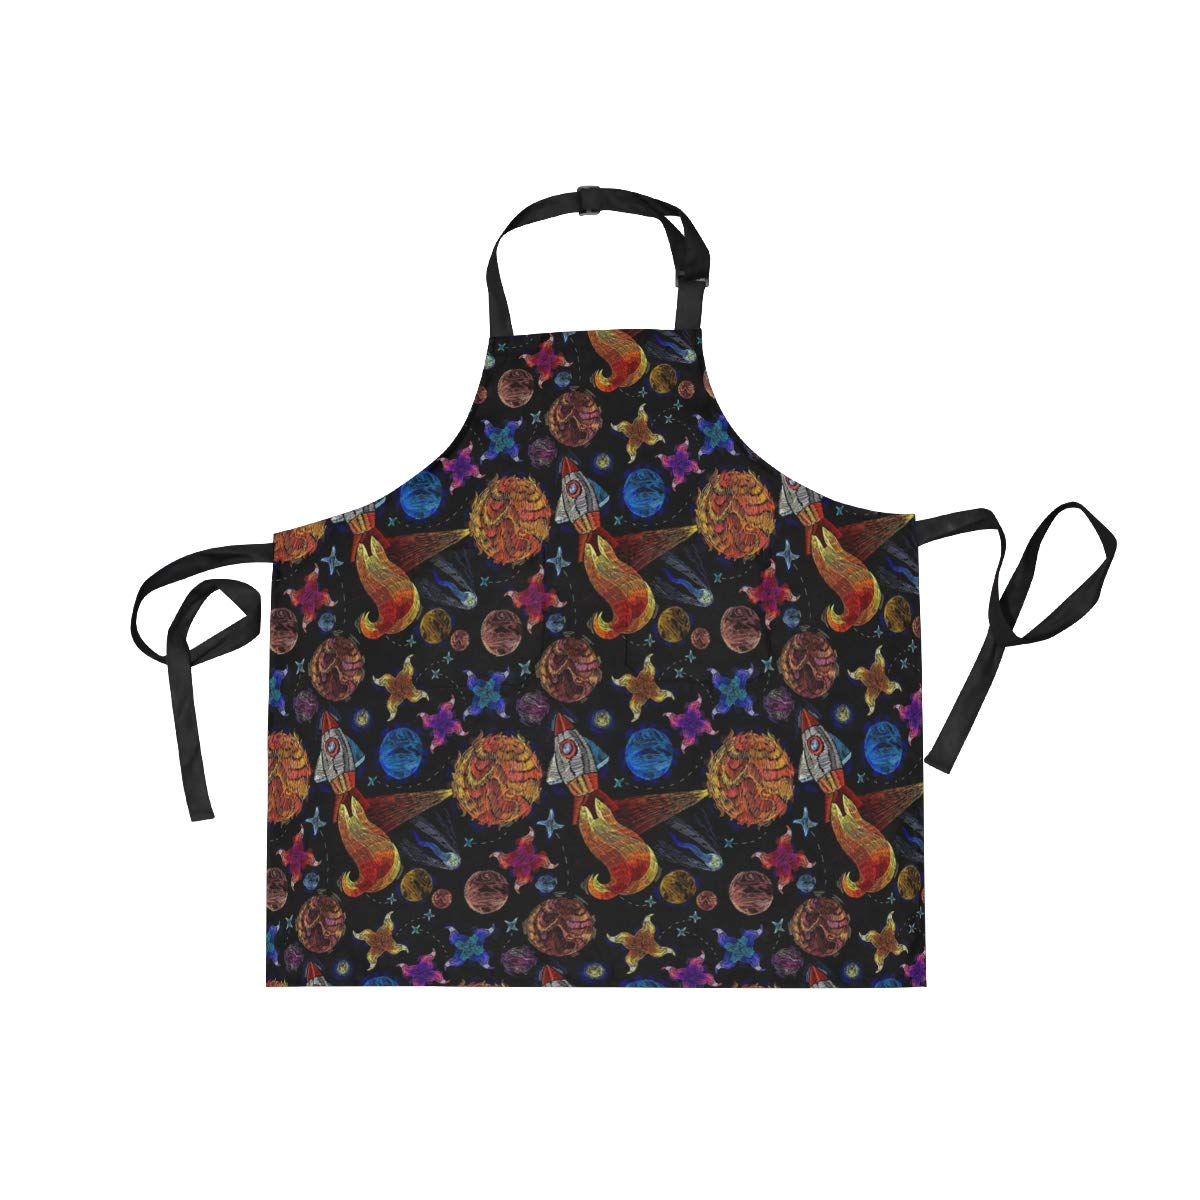 DOPKEEP Solar Galaxy Space Bib Apron Adjustable Size Kitchen Apron with Pockets and Extra Long Ties for Women and Men Home Chefs Cooking Gardening BBQ